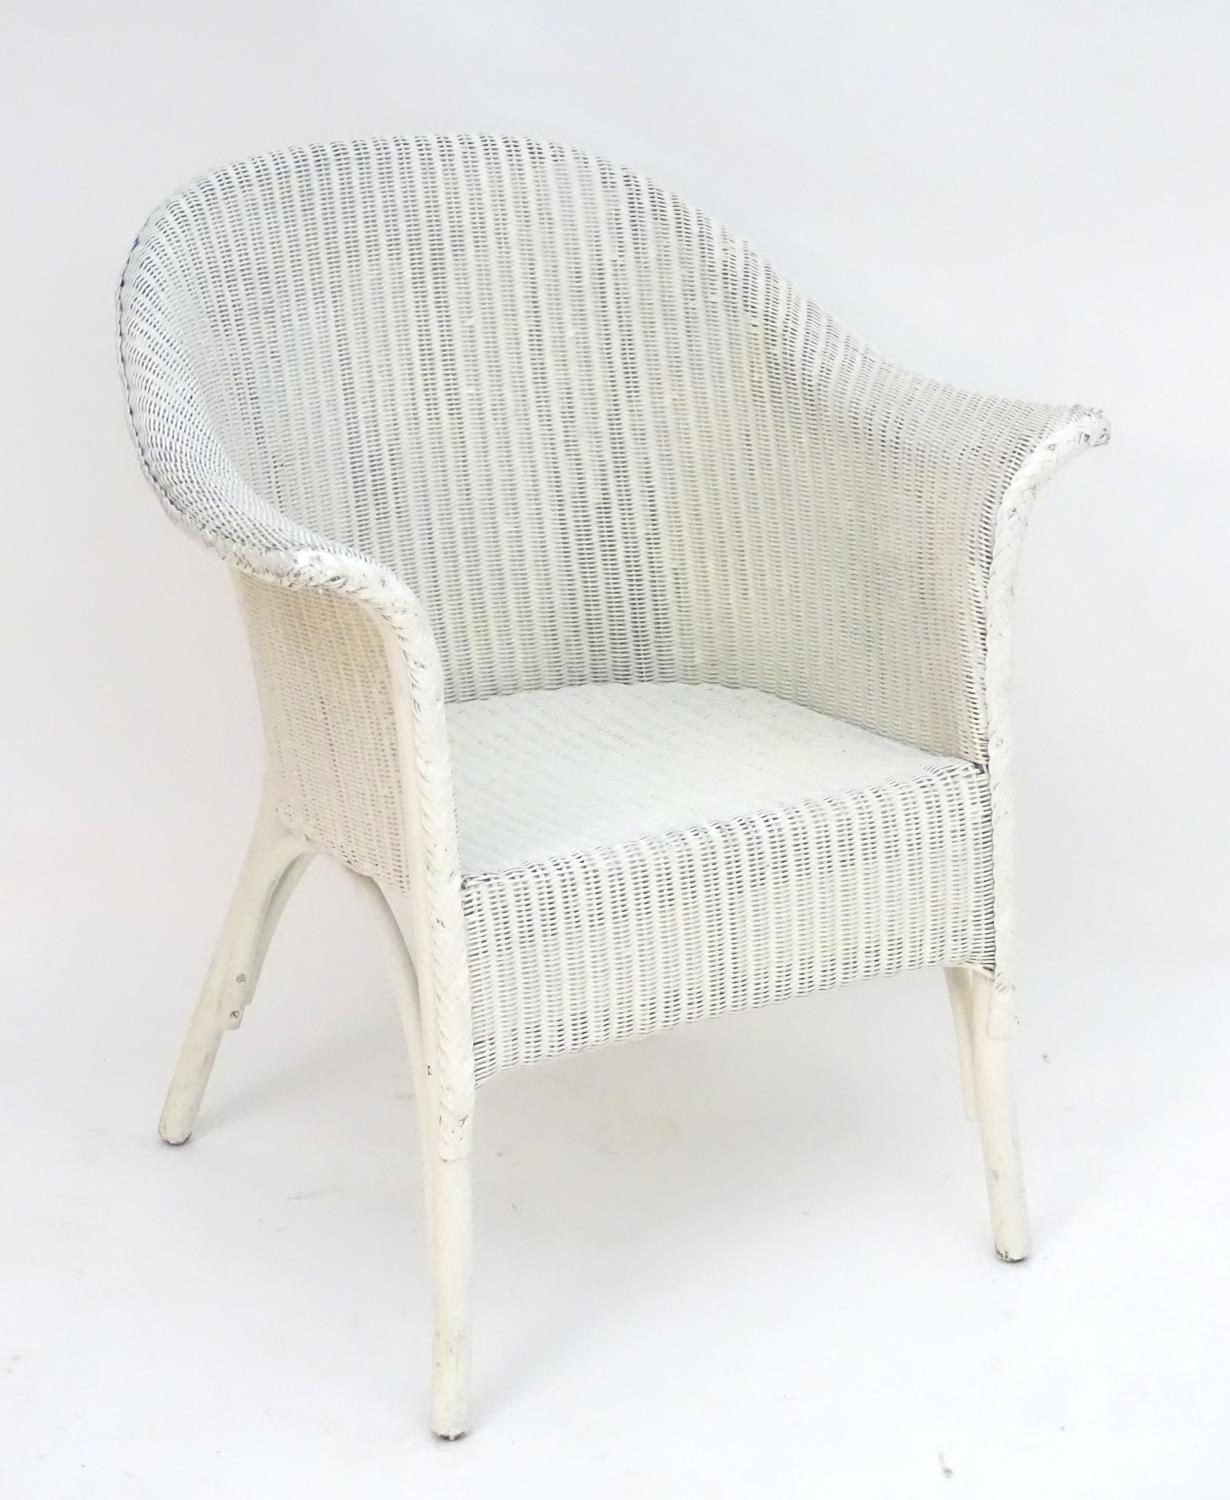 An early 20thC LLoyd loom armchair with a white painted bentwood frame. Bearing label to underneath.